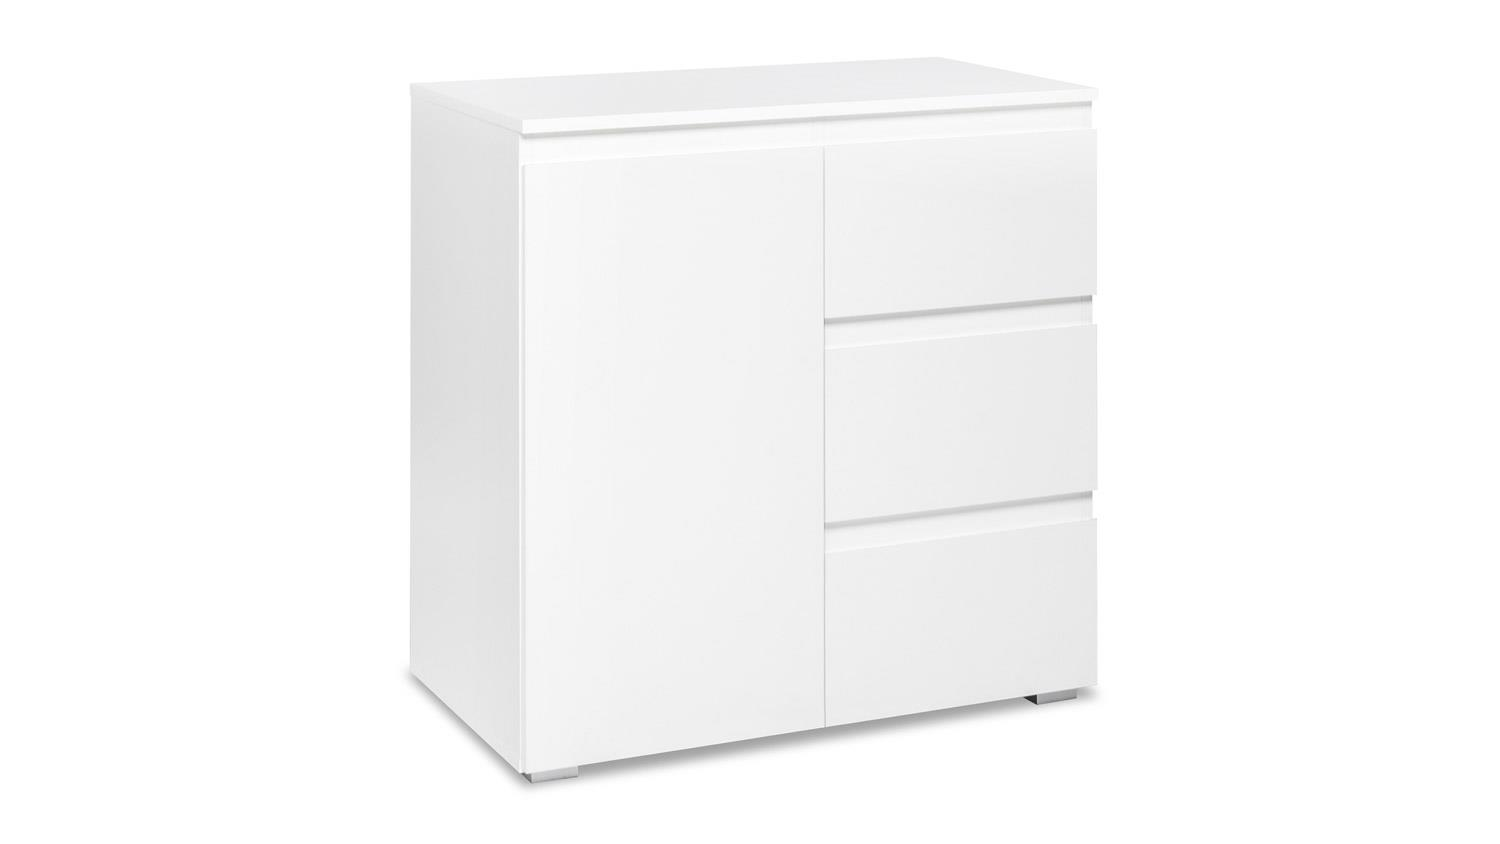 kommode blanc 2 wei er schrank 1 t rig mit schubk sten 80x80 cm. Black Bedroom Furniture Sets. Home Design Ideas